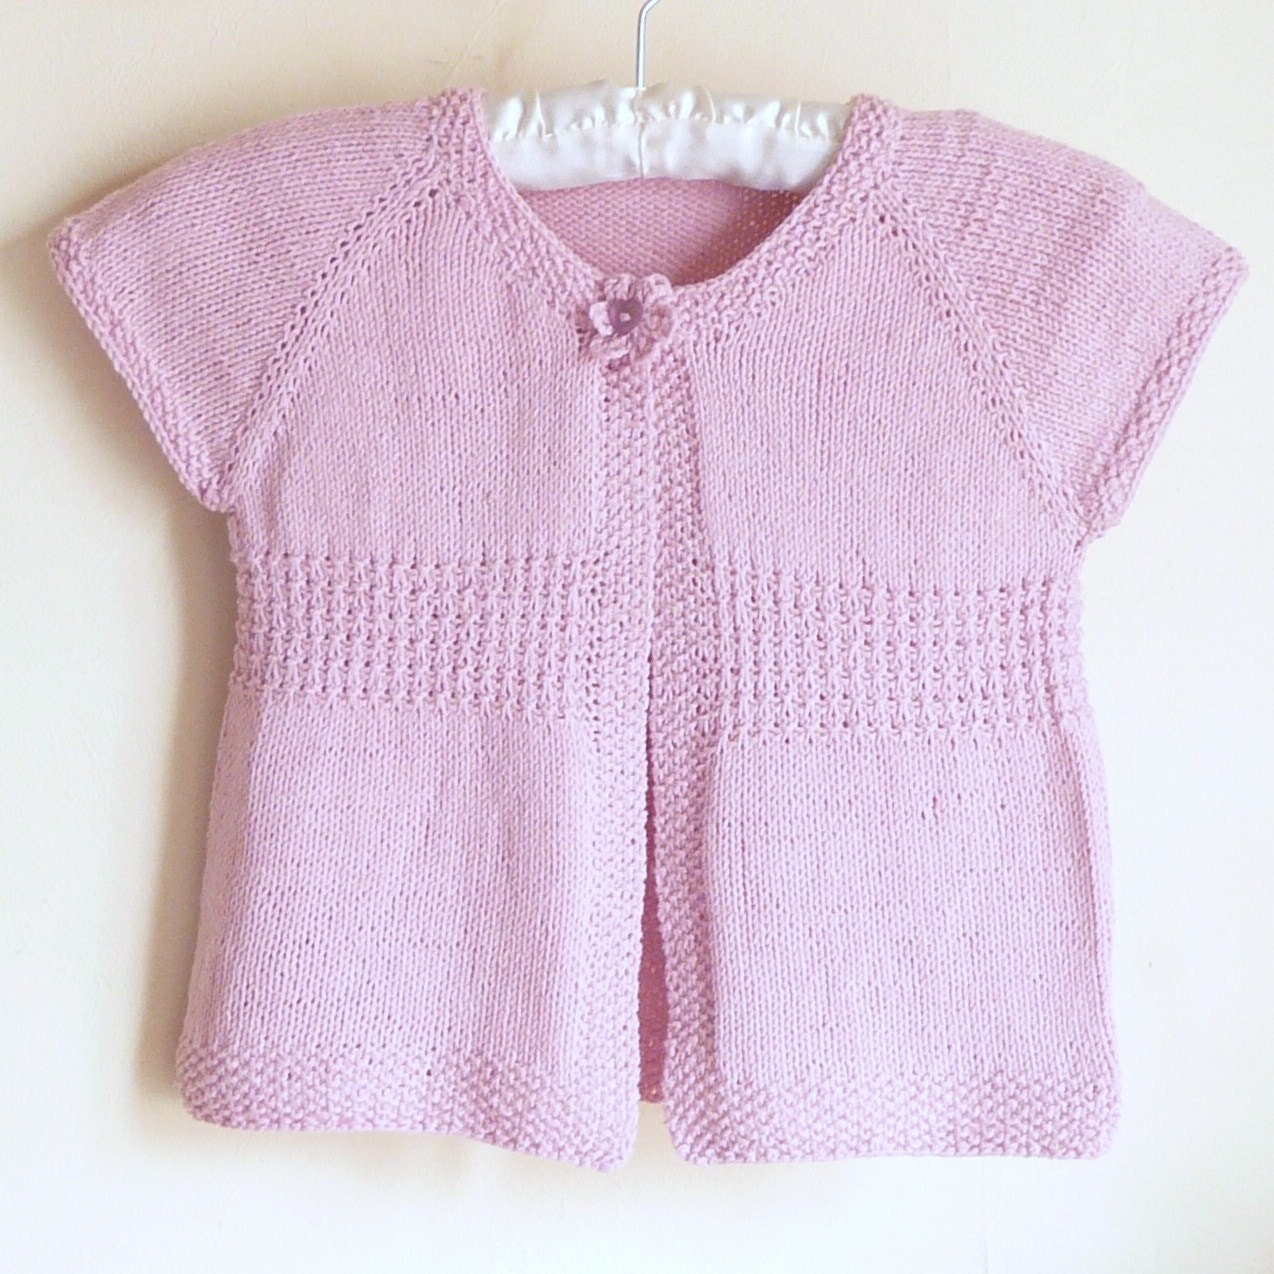 Knitted Baby Vest Pattern : Knitting PATTERN Seamless Top Down Baby Girl CARDIGAN by ceradka